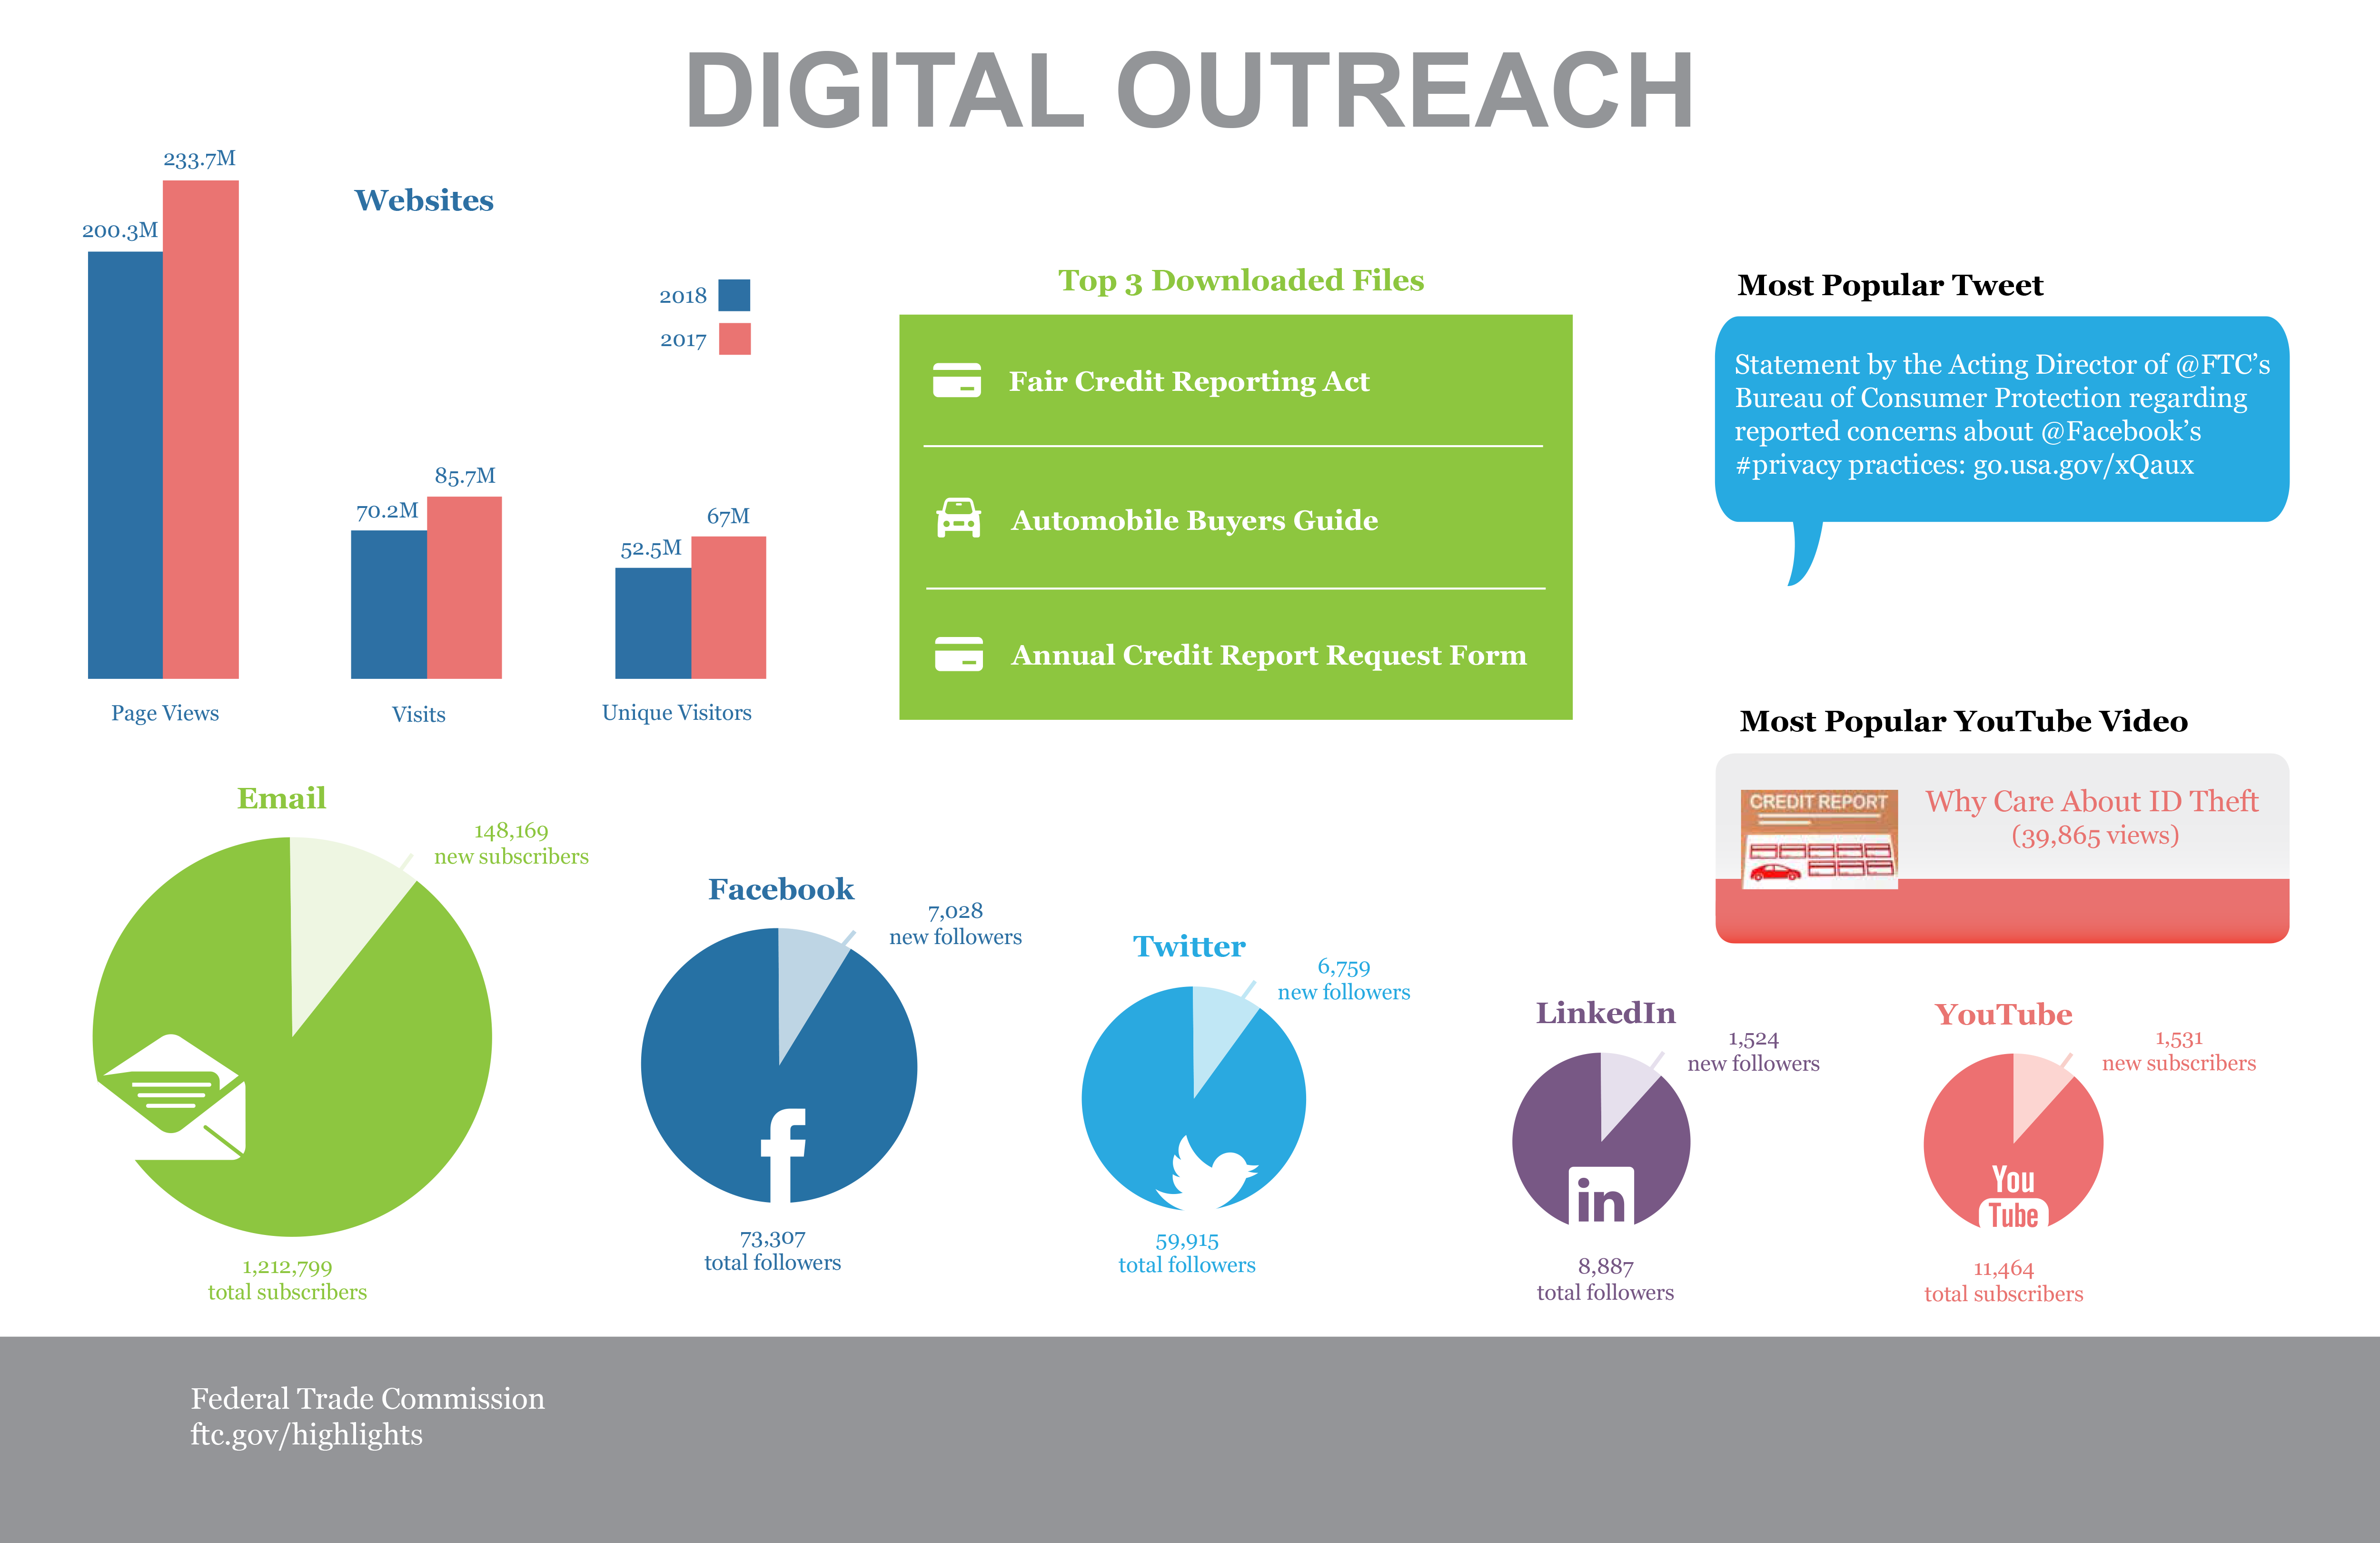 Stats & Data 2018 Digital Outreach infographic